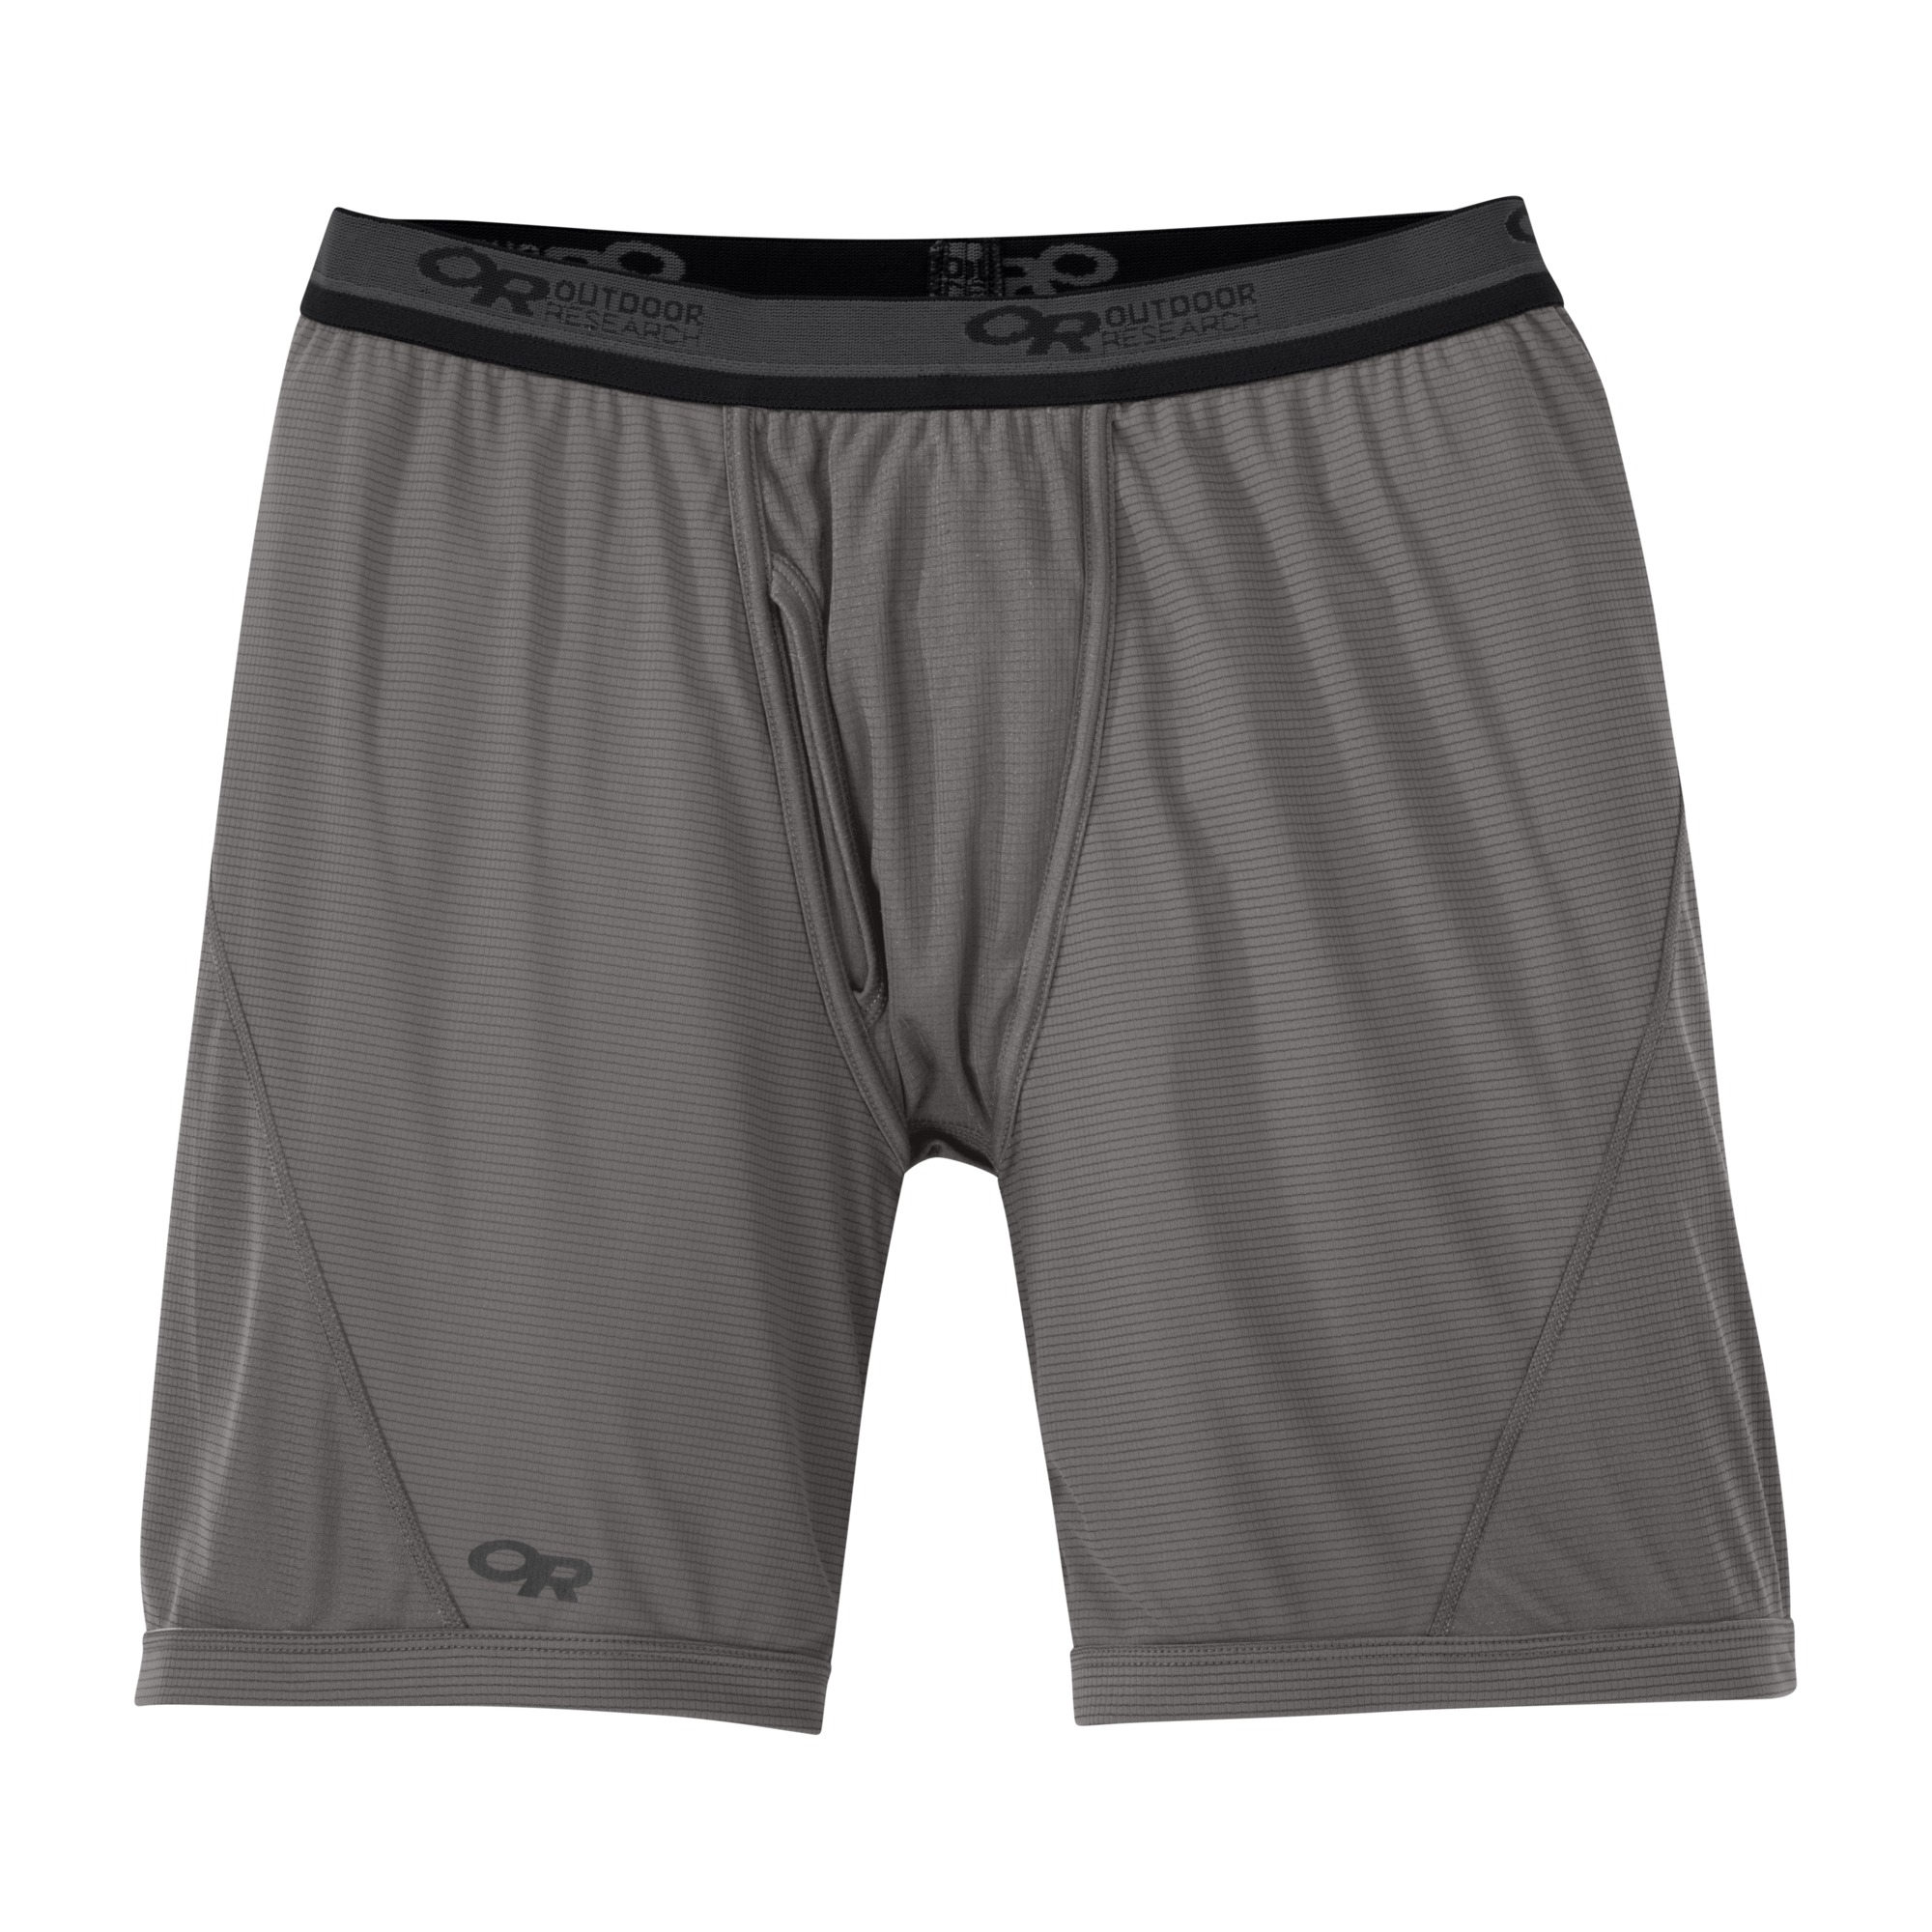 a8e672549 Men's Echo Boxer Briefs - pewter/charcoal | Outdoor Research